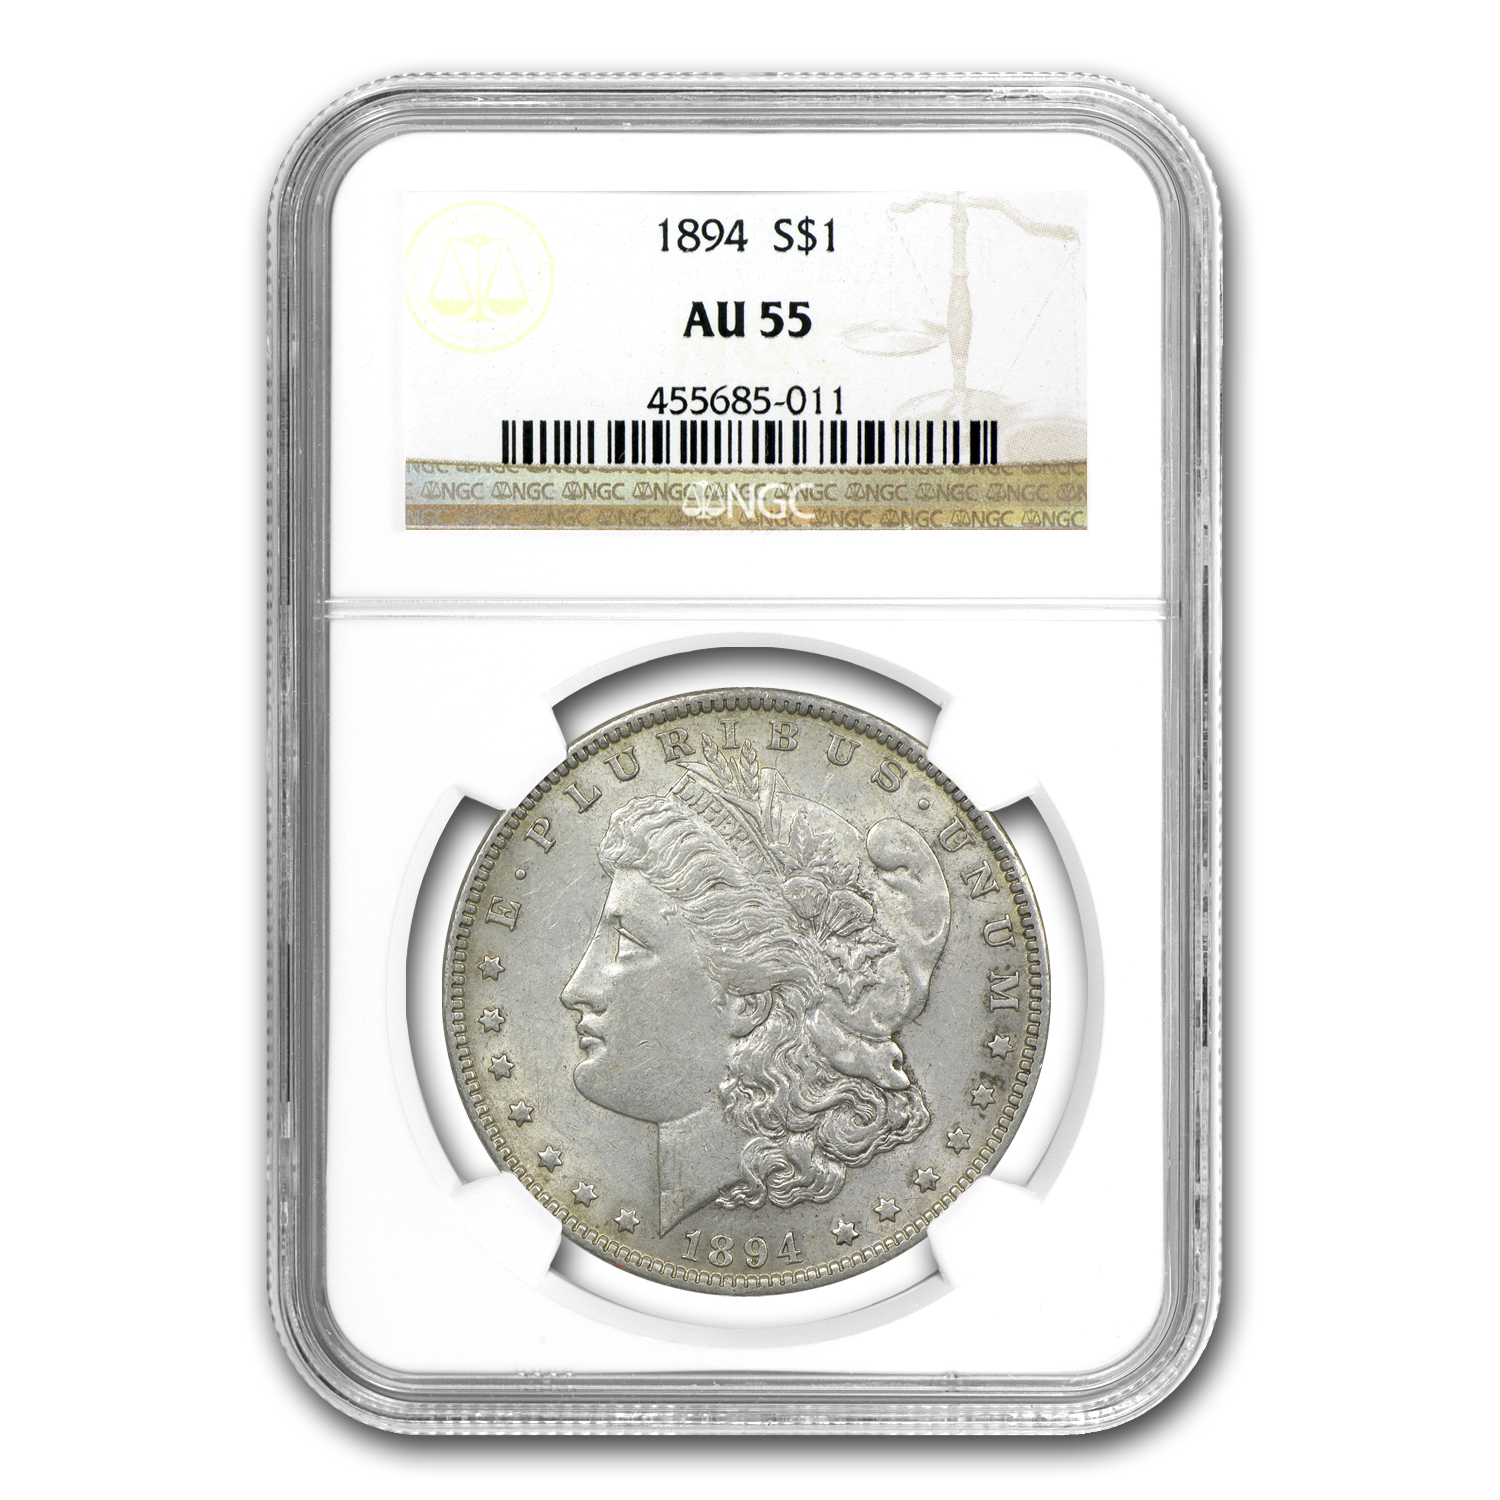 1894 Morgan Dollar Almost Uncirculated-55 NGC - Key Date